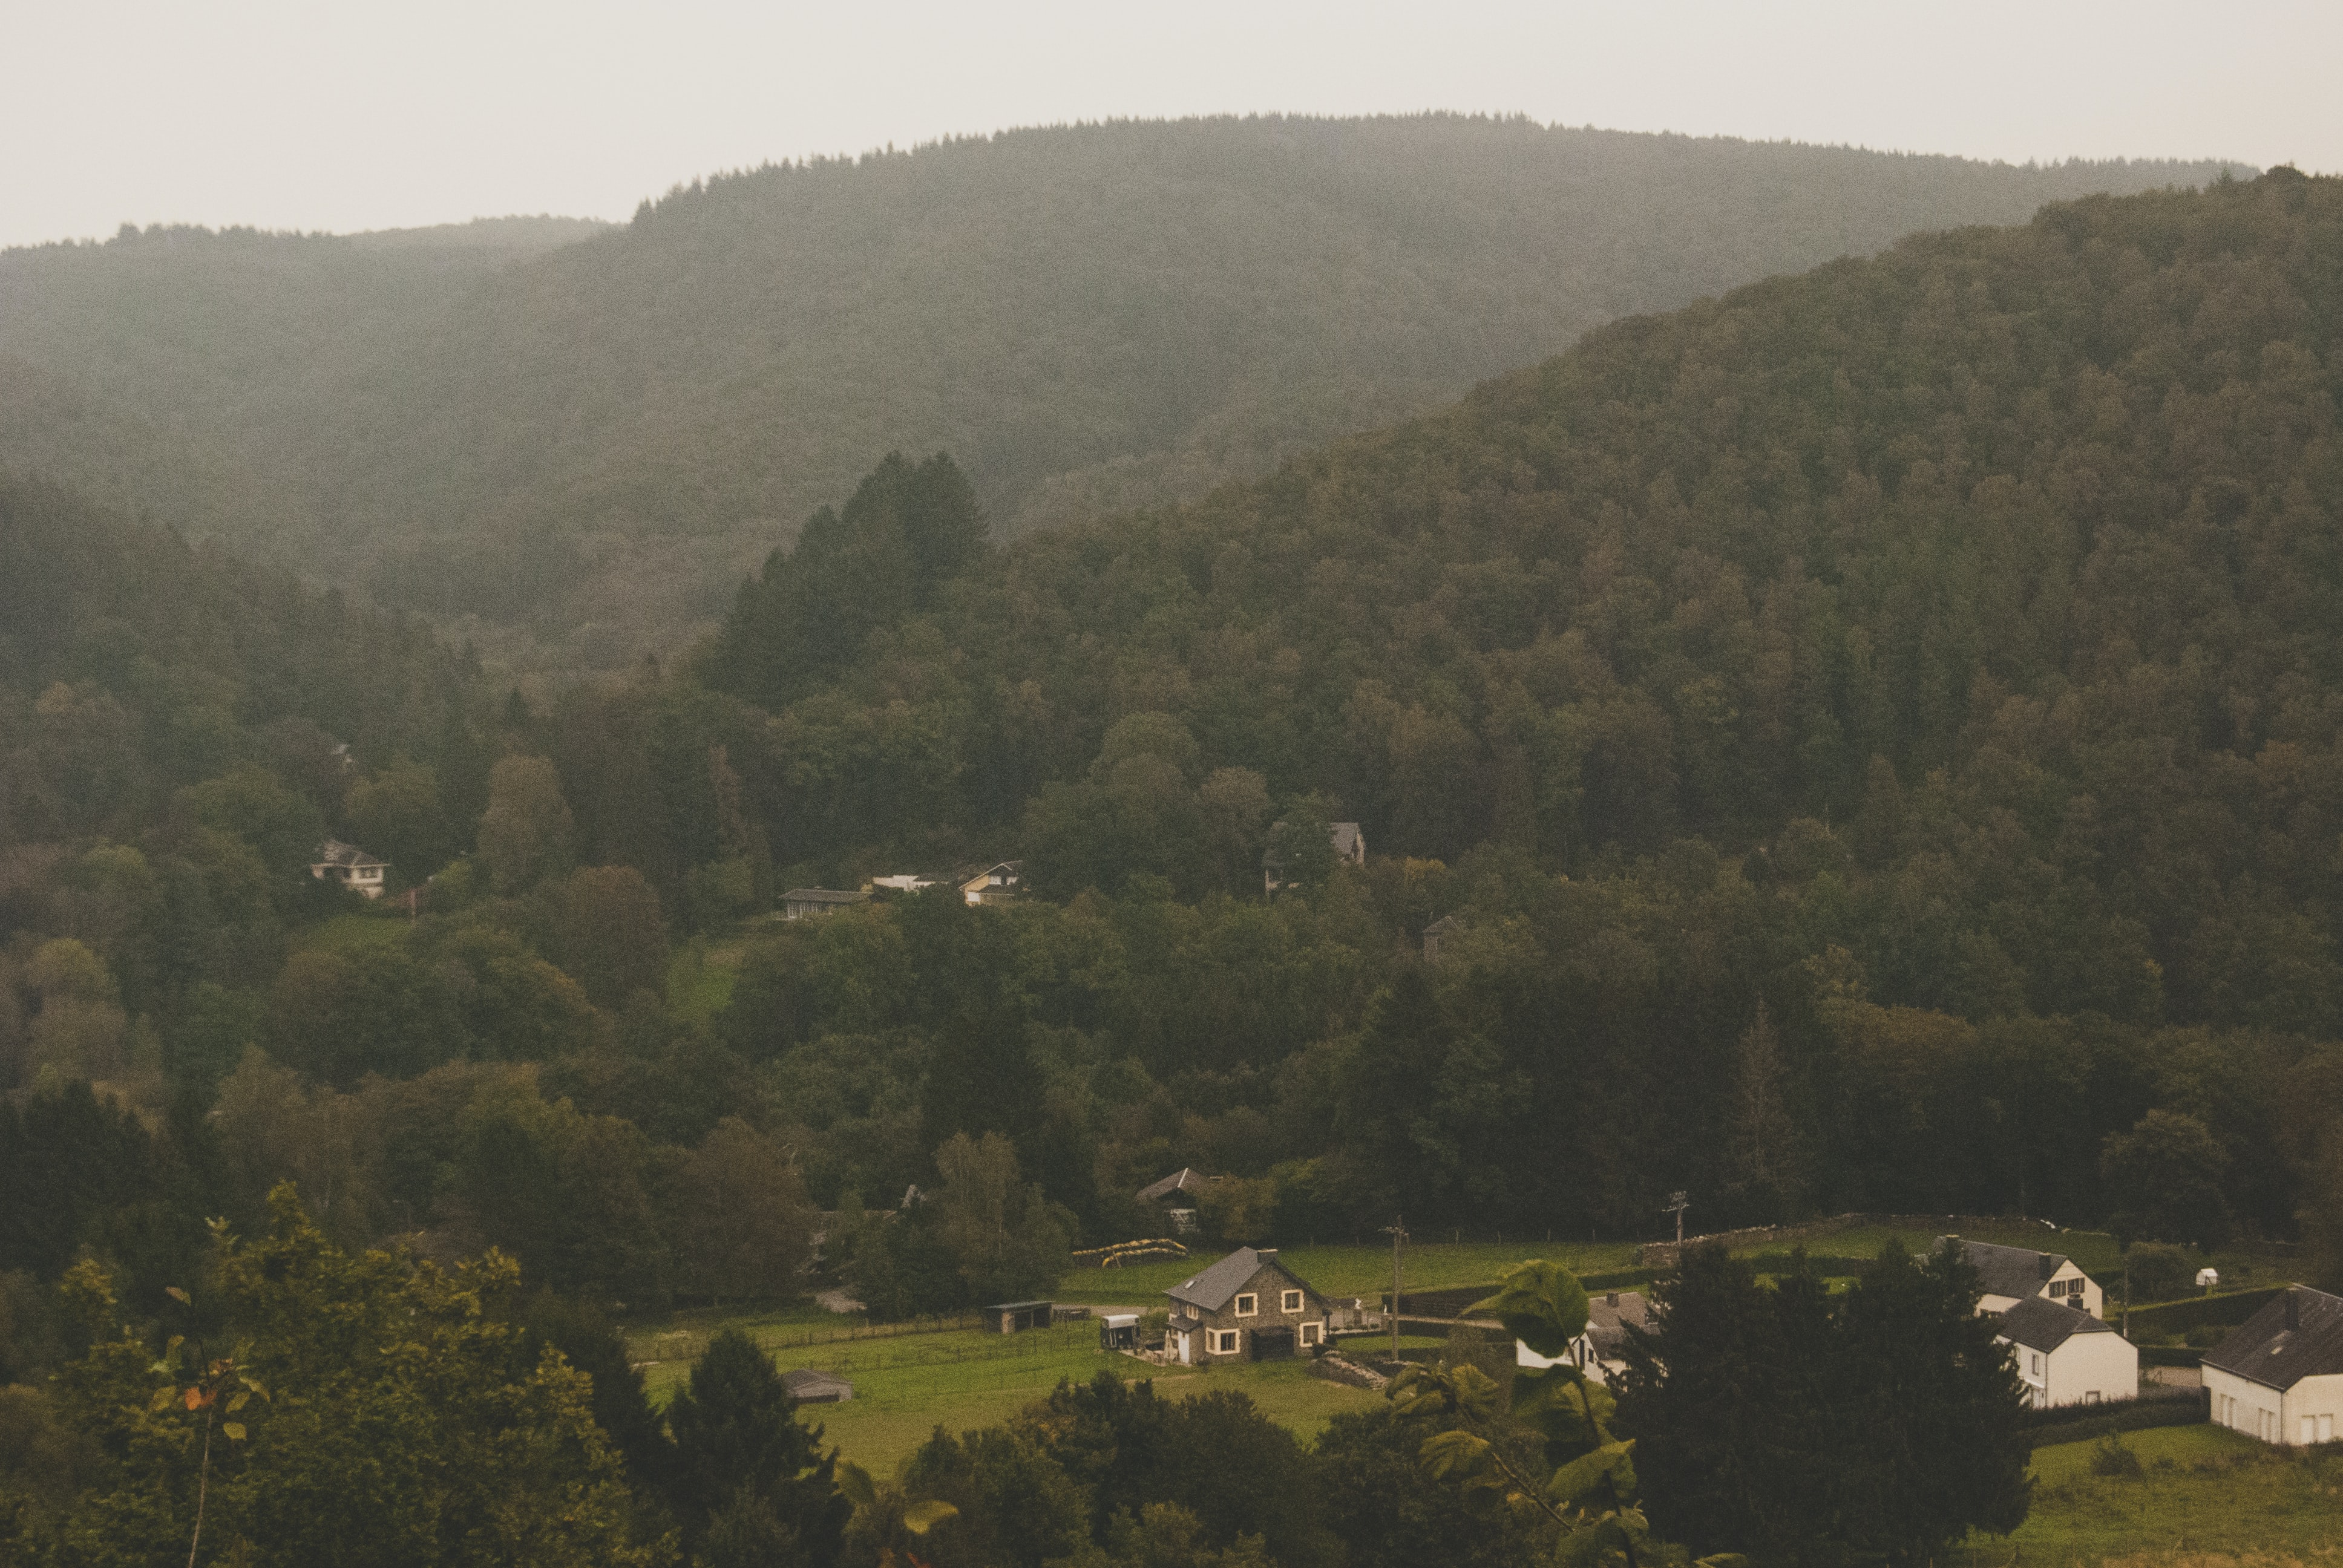 A fuzzy shot of a small village in a forested valley